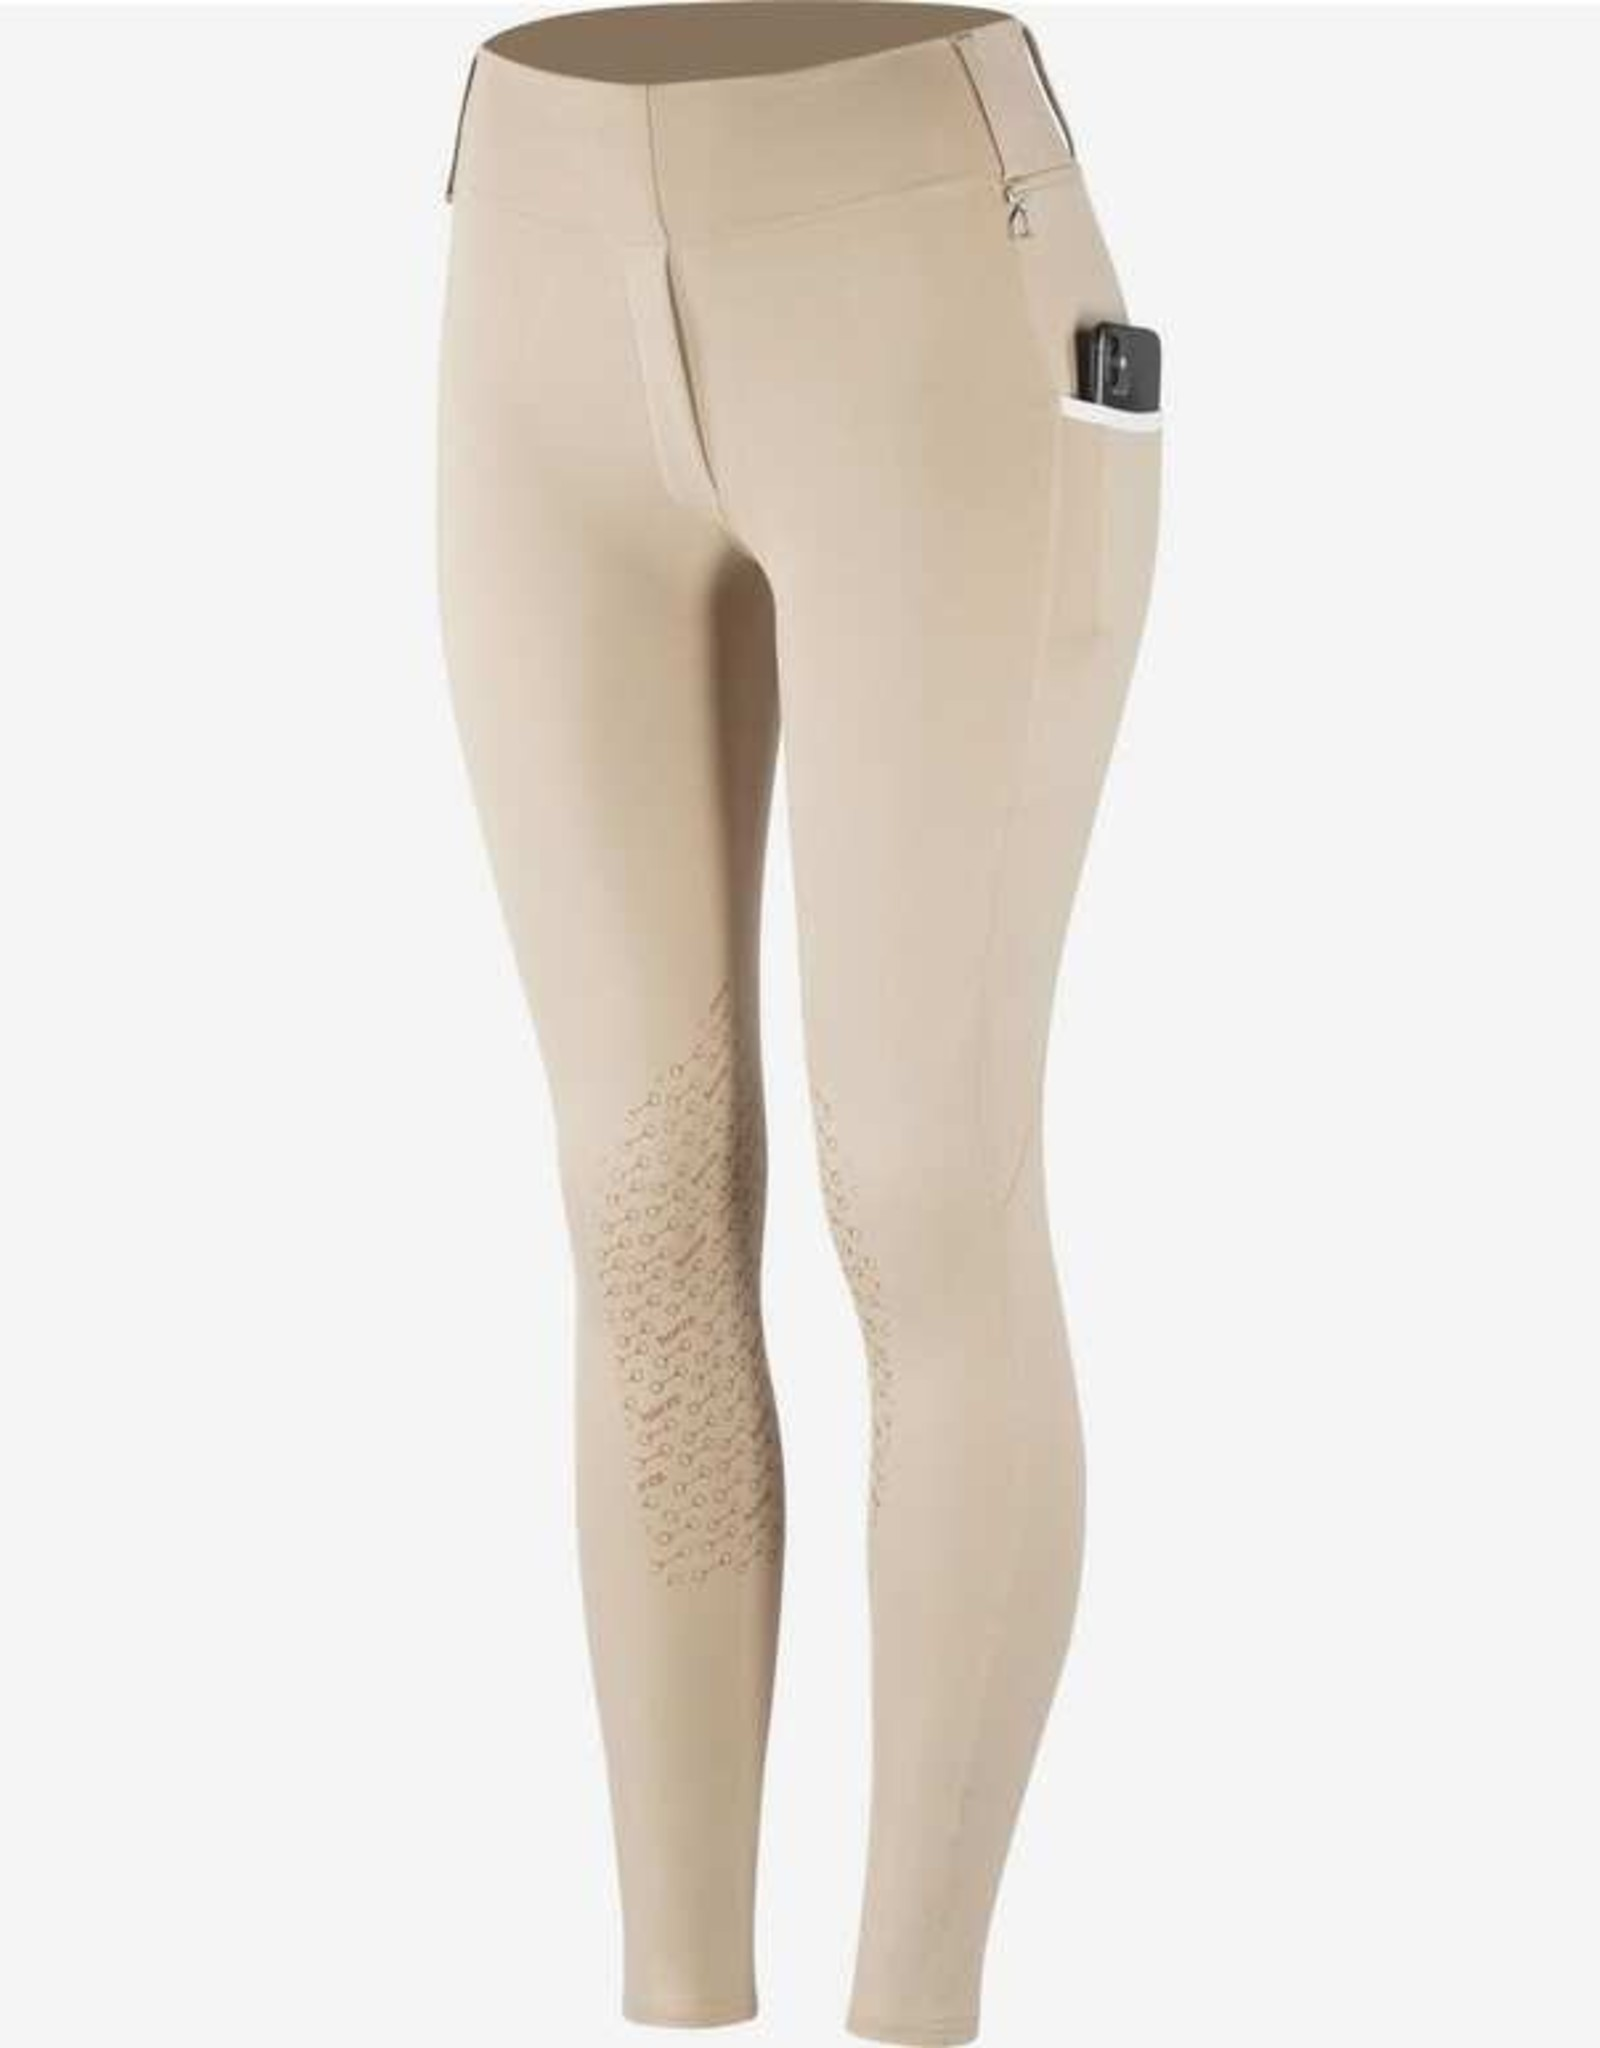 HORZE LUCINDA HIGH WAIST SILICONE KNEE PATCH  TIGHT